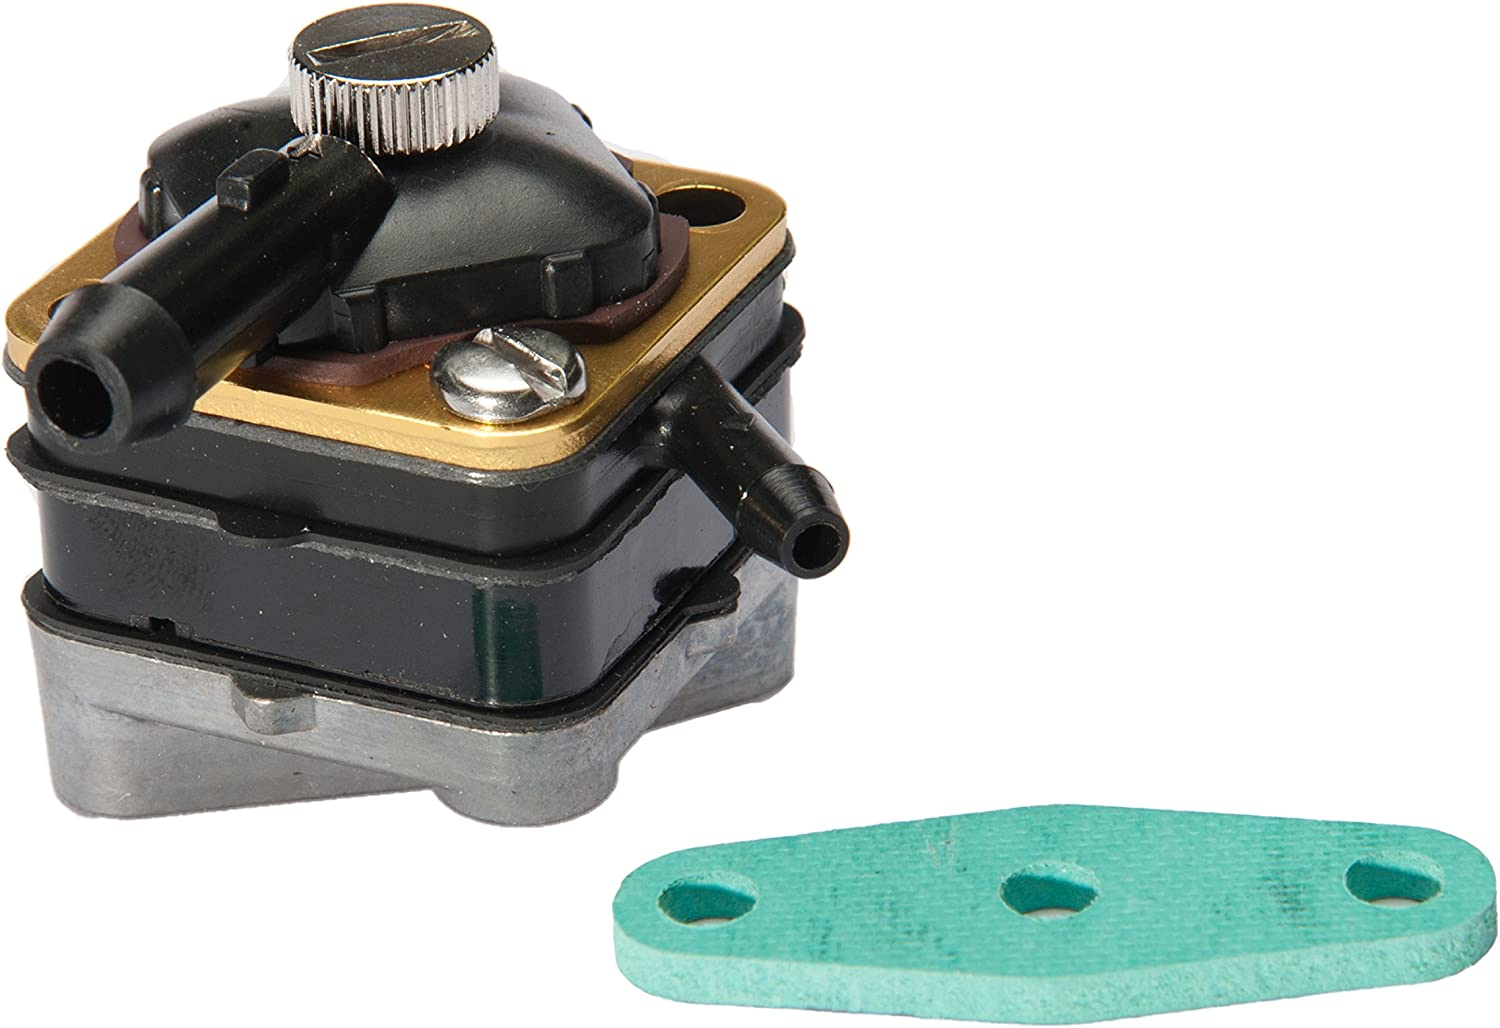 Sierra 18-7350 Fuel Pump, Mallory, Johnson / Evinrude Outboards